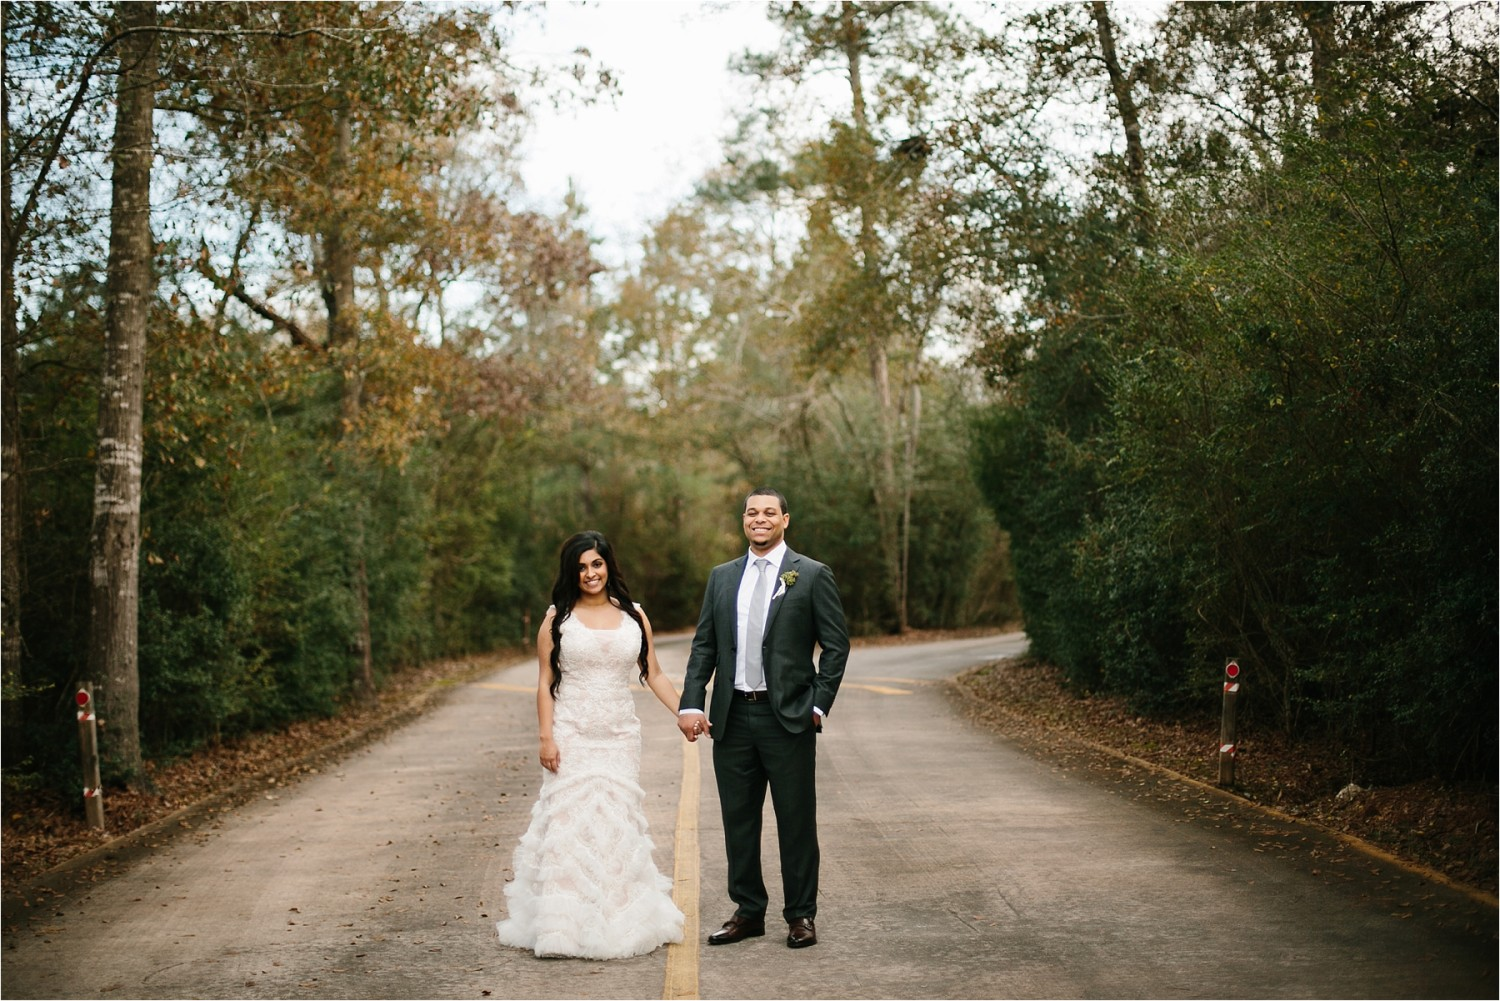 Jeanpaul + Ann __ a colorful wedding at Ashton Gardens in Houston TX by North Texas Wedding Photographer Rachel Meagan Photography _ 56